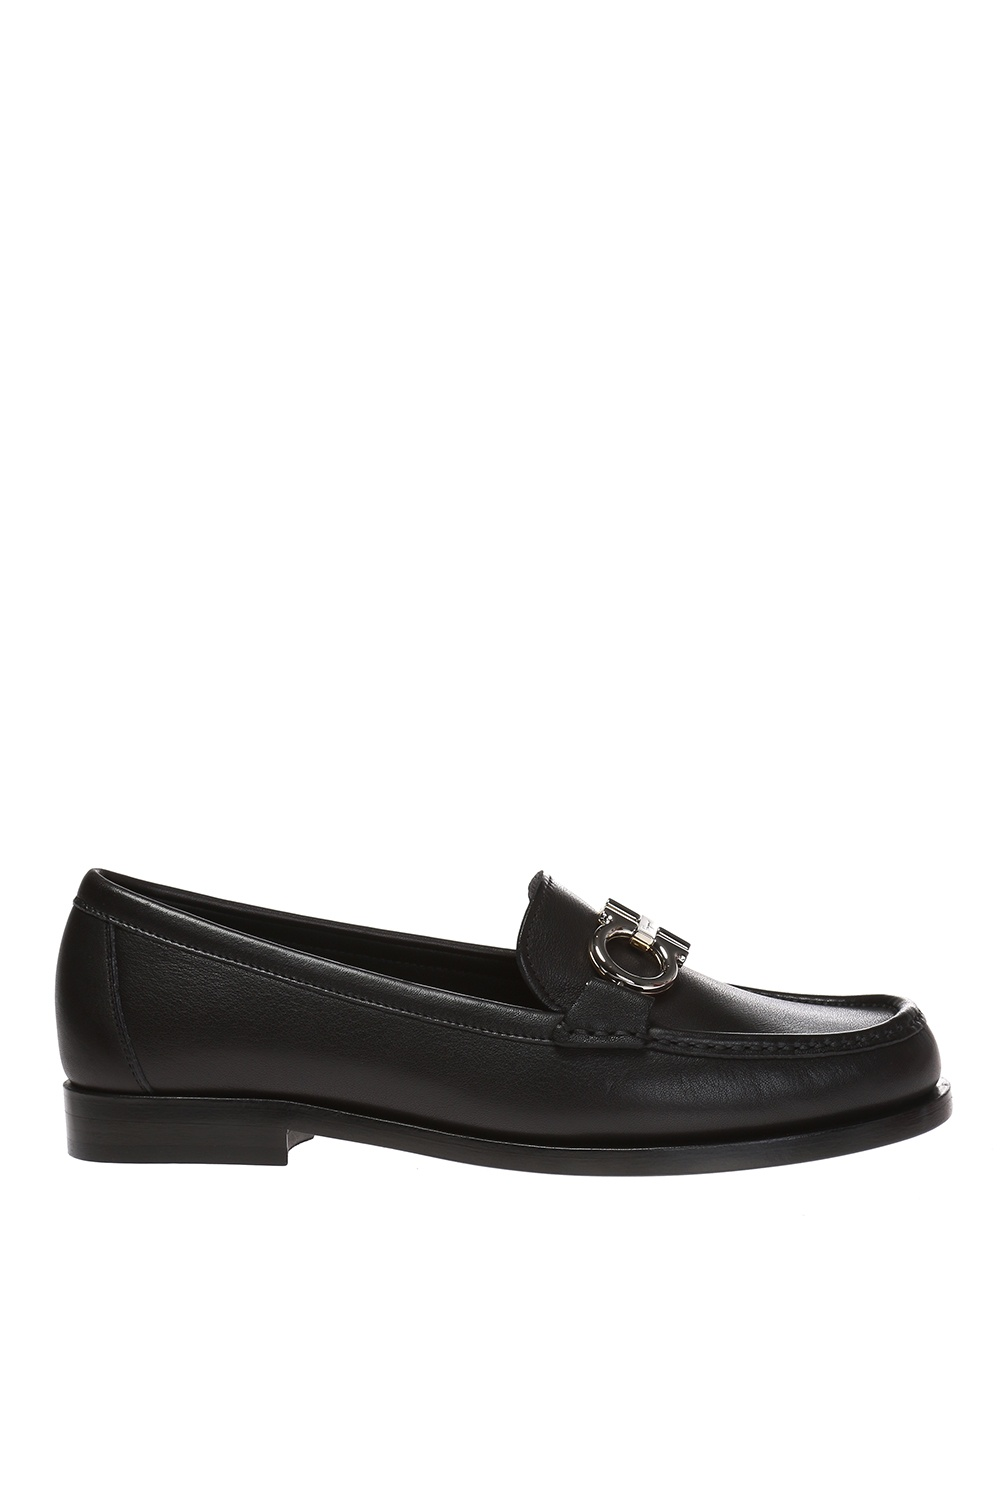 Salvatore Ferragamo 'Rolo' loafers